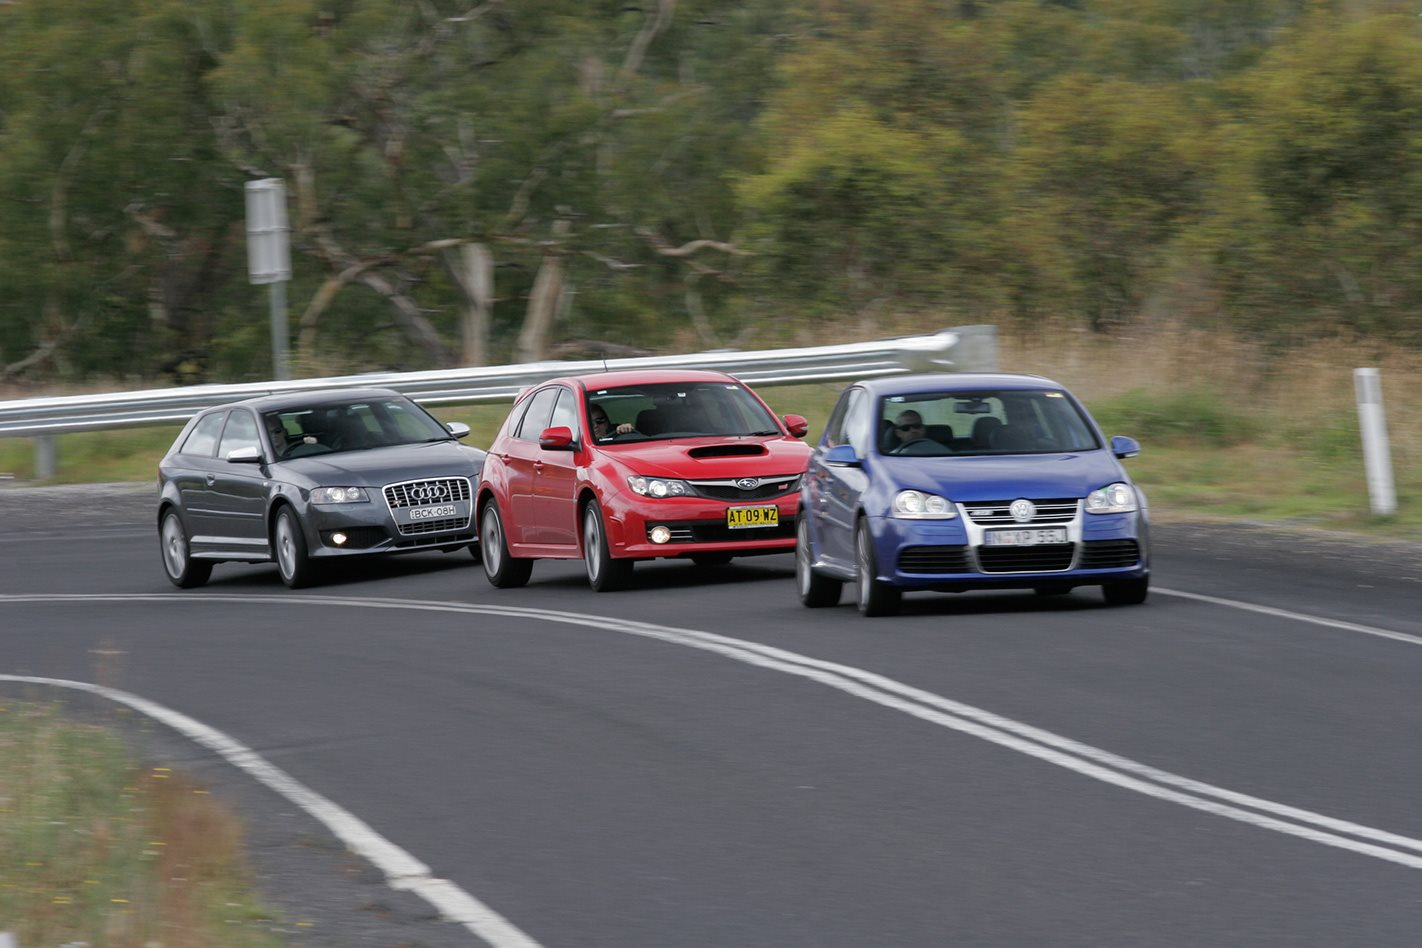 2008 Subaru Impreza WRX STI vs Audi S3 vs Golf R32 on the road.jpg